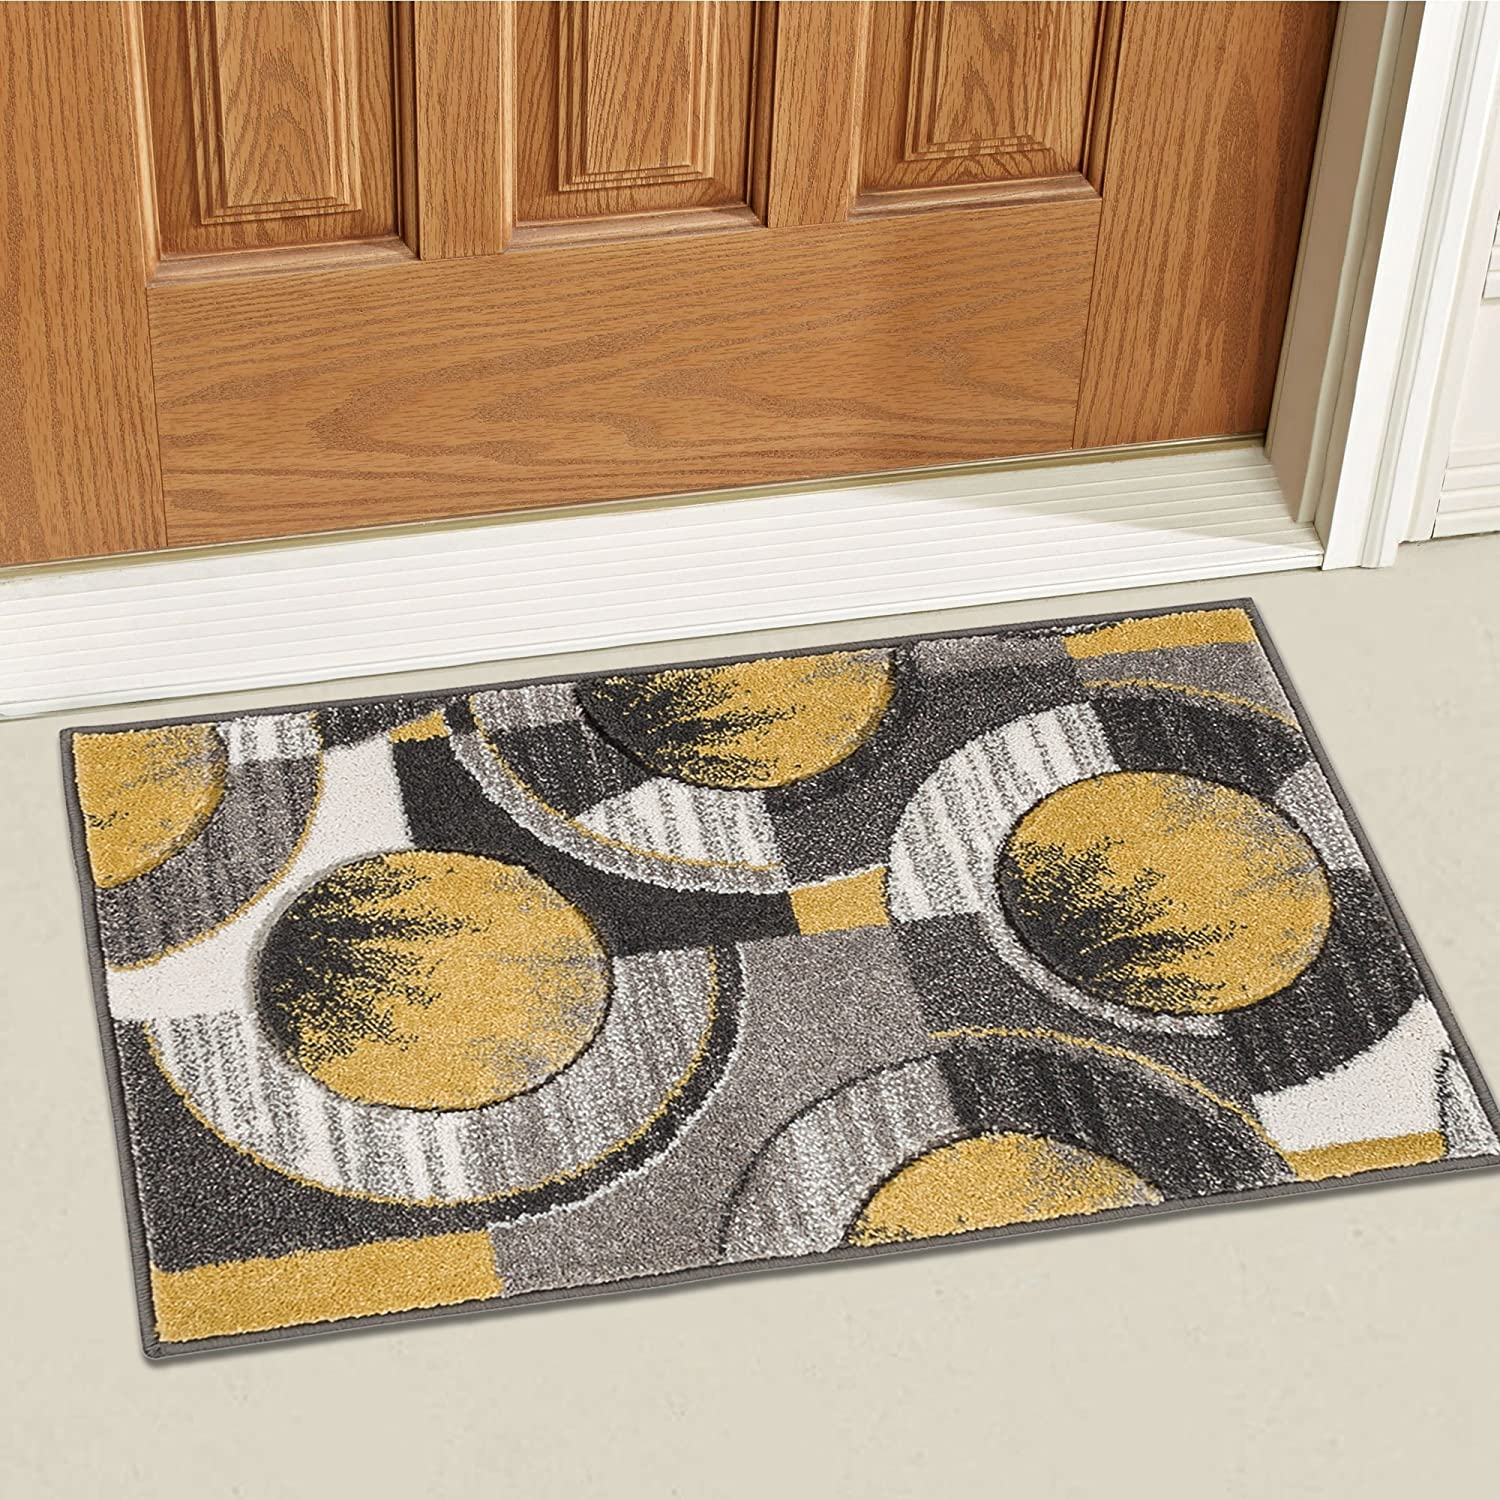 Well Woven Gold Yolo Modern Abstract Geometric 2' x 3' Mat Accent Area Rug